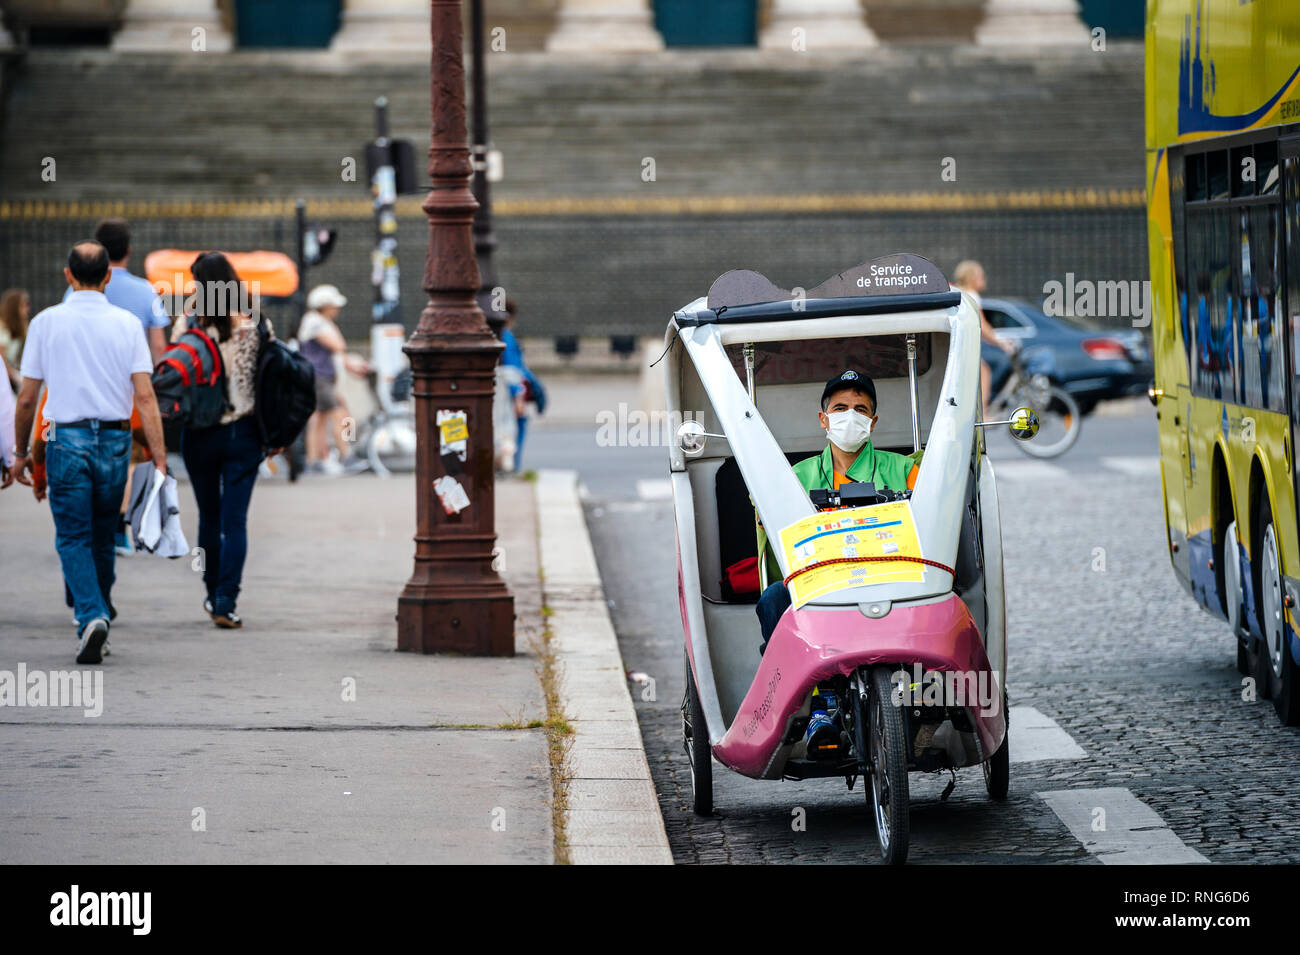 PARIS, FRANCE - MAY 21, 2016: Man with protection mask driving his rickshaw on Paris street - high level of air pollution and bad environment in central Paris, public transportation  - Stock Image